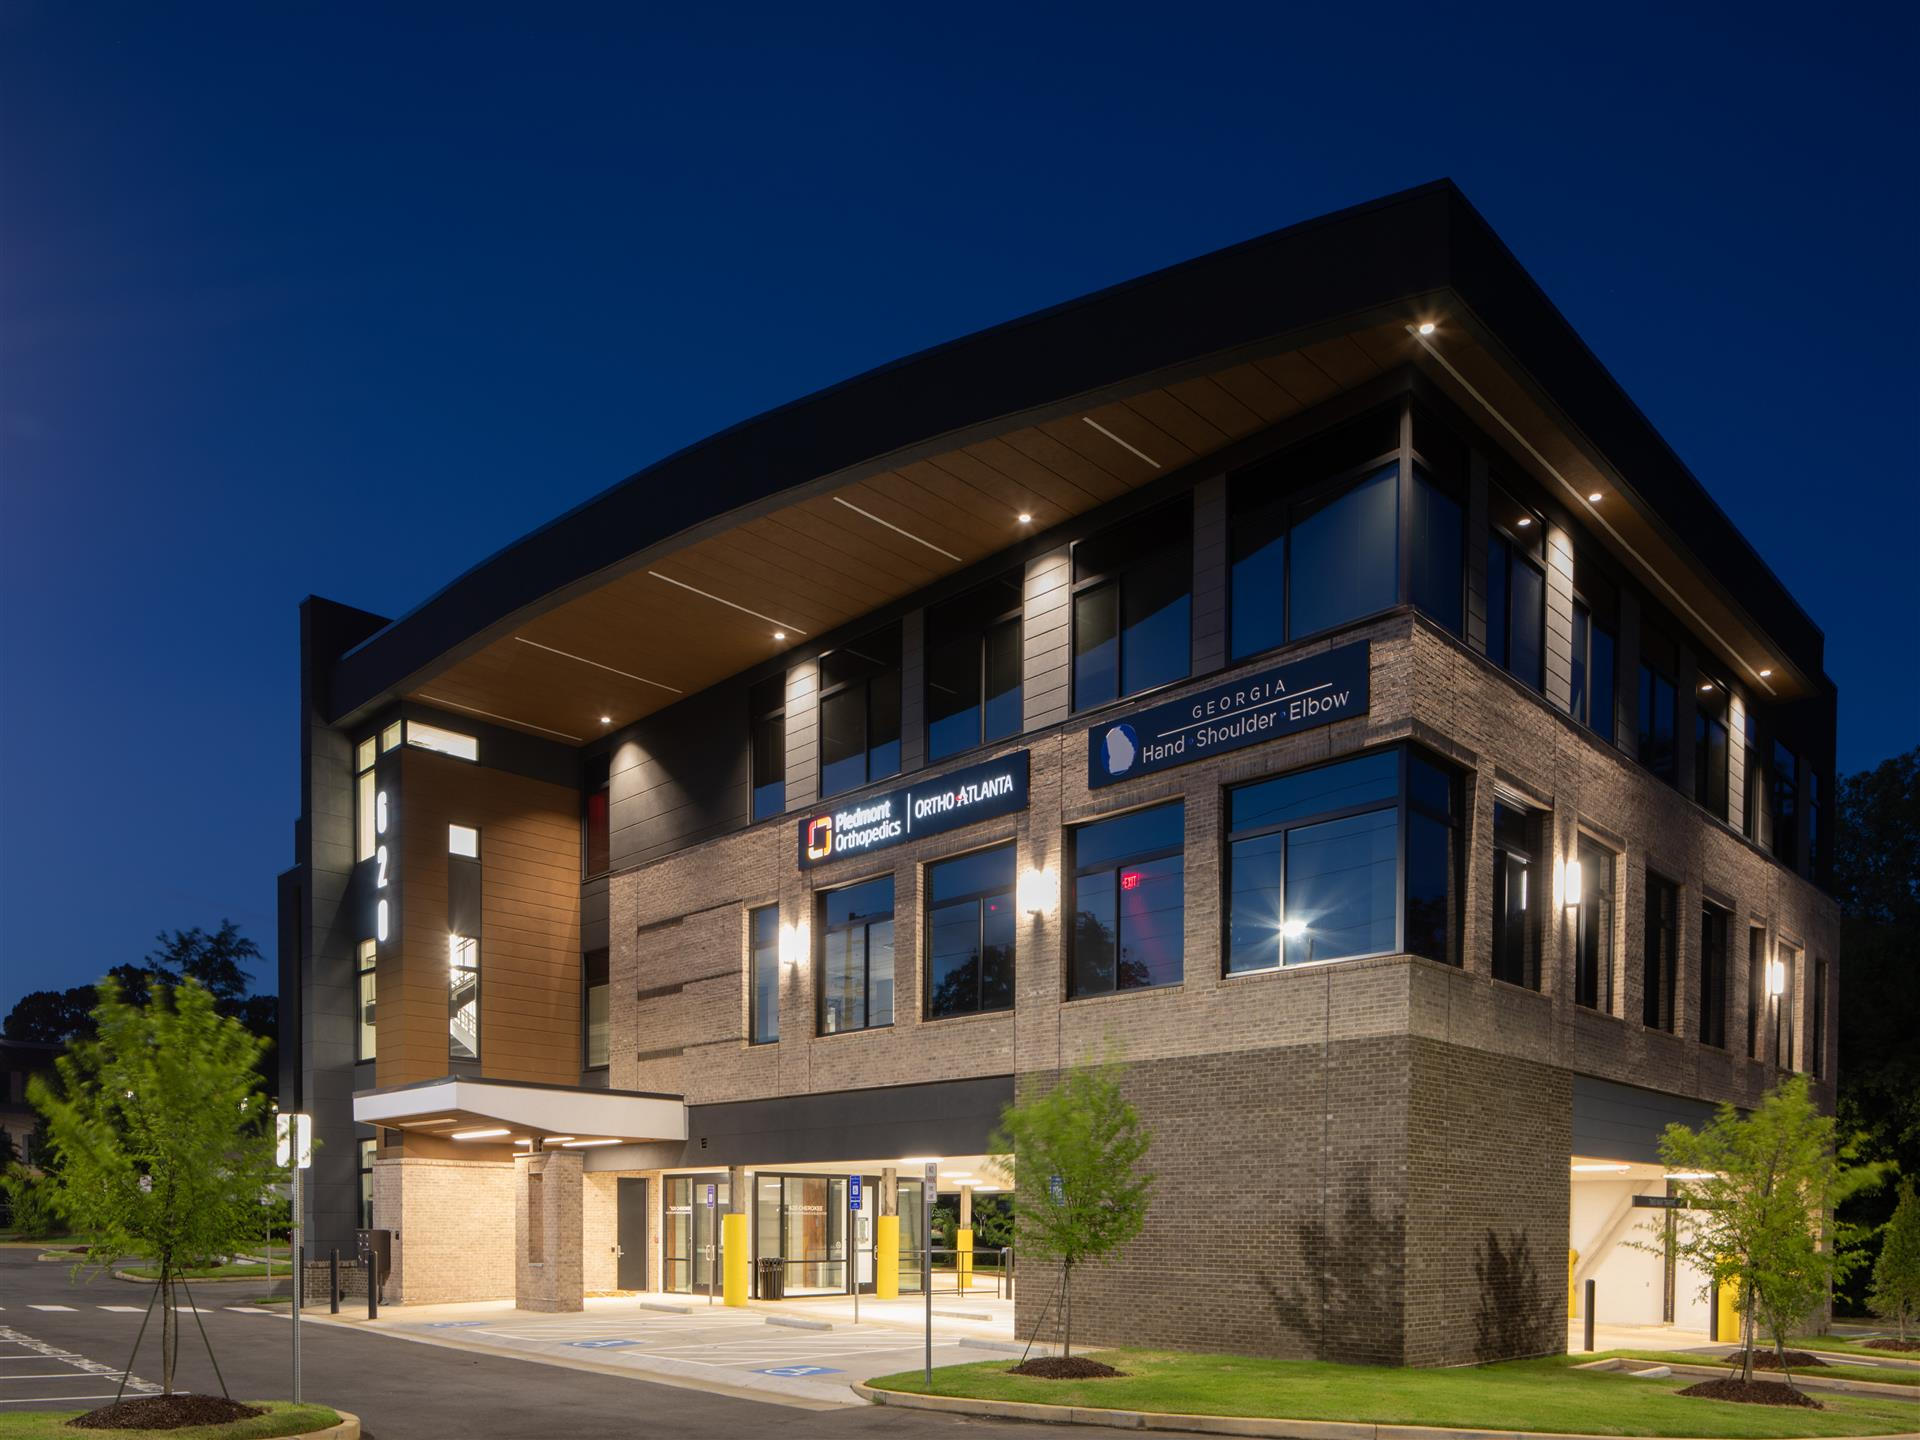 exterior photo of 2 story brick building with parking underneath, night shot